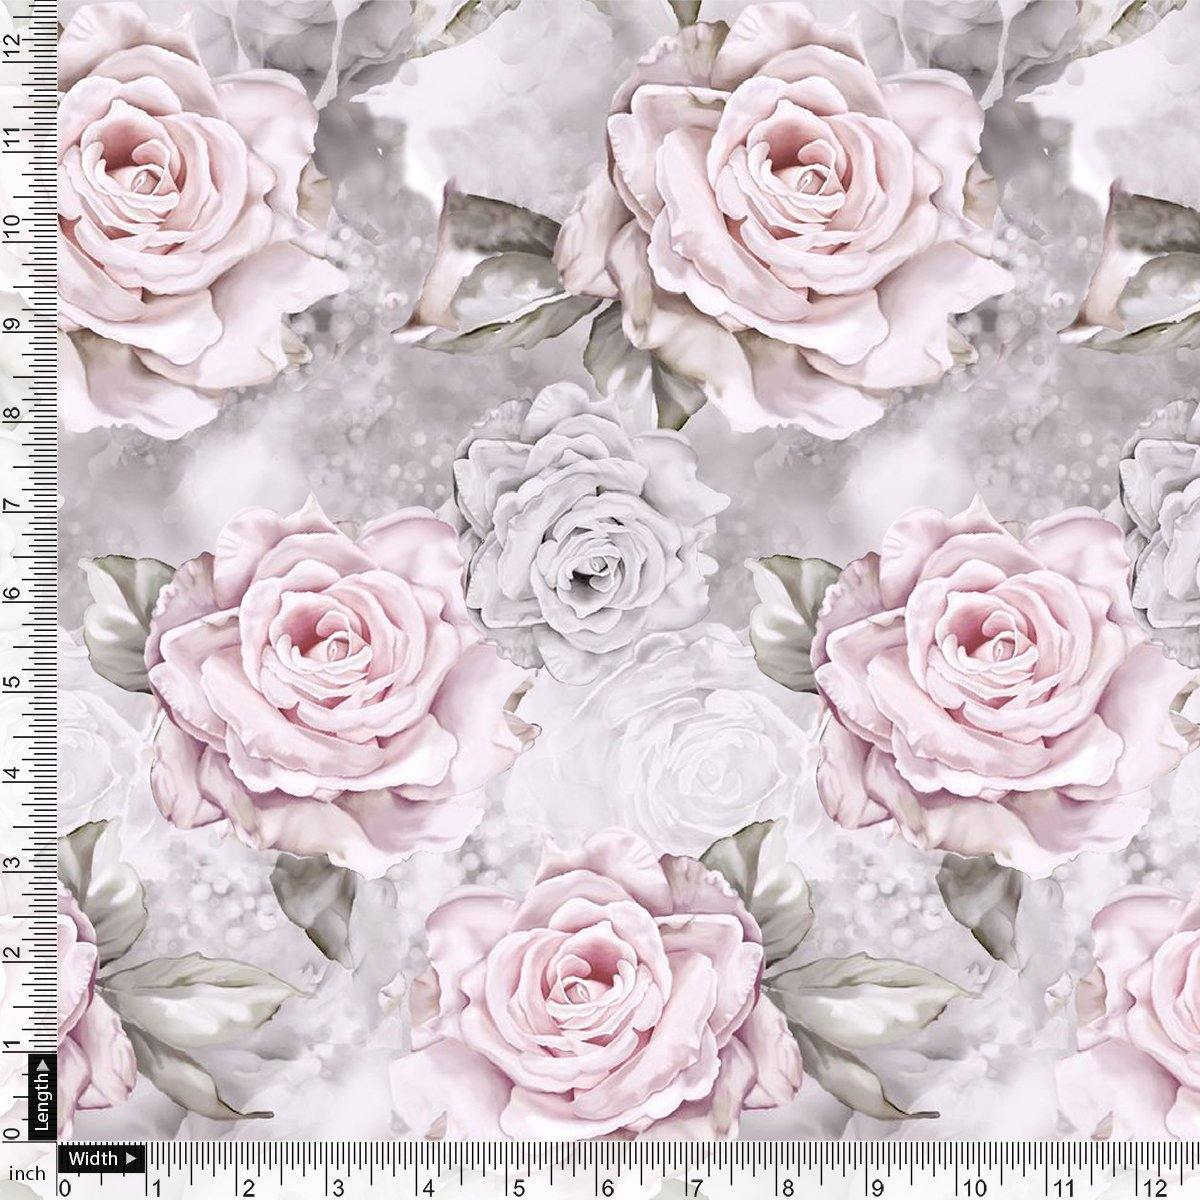 Rosegold Flower Digital Printed Fabric - FAB VOGUE Studio. Shop Fabric @ www.fabvoguestudio.com